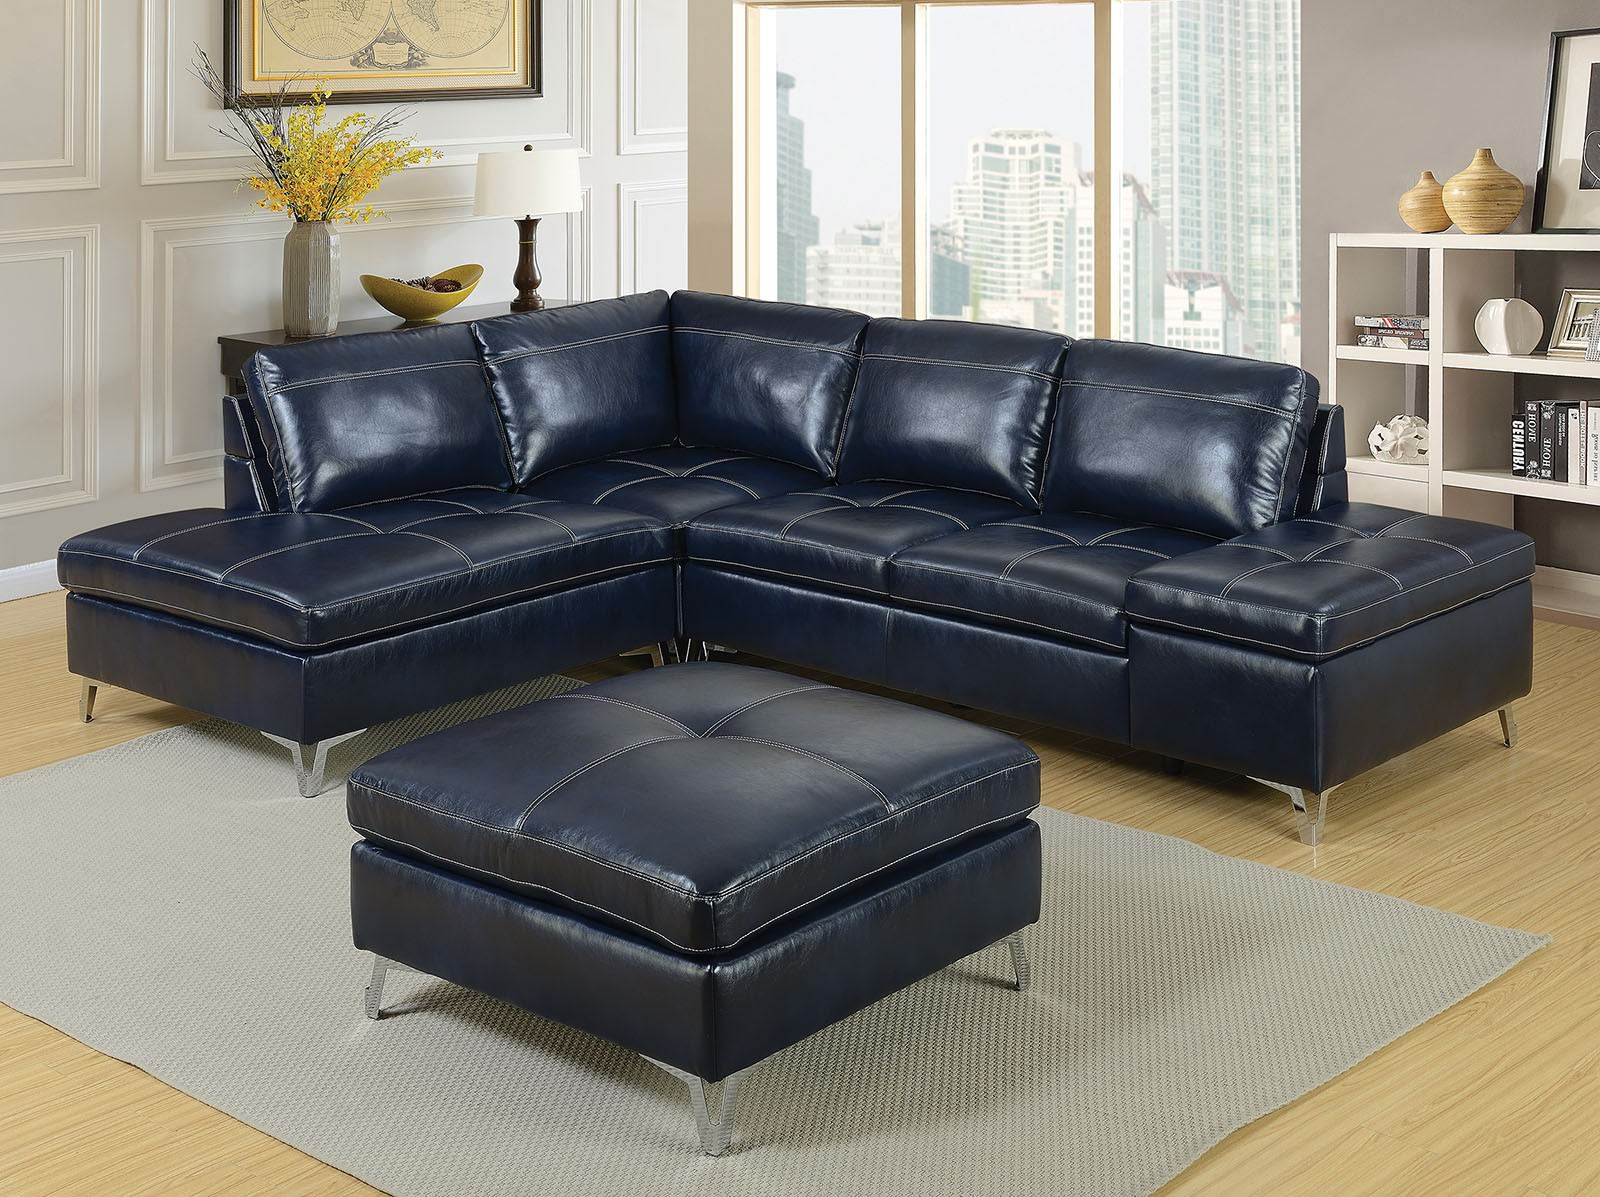 Tatum Dark Grey 2 Piece Sectionals With Laf Chaise For Well Known Leather Sectionals (Gallery 15 of 20)